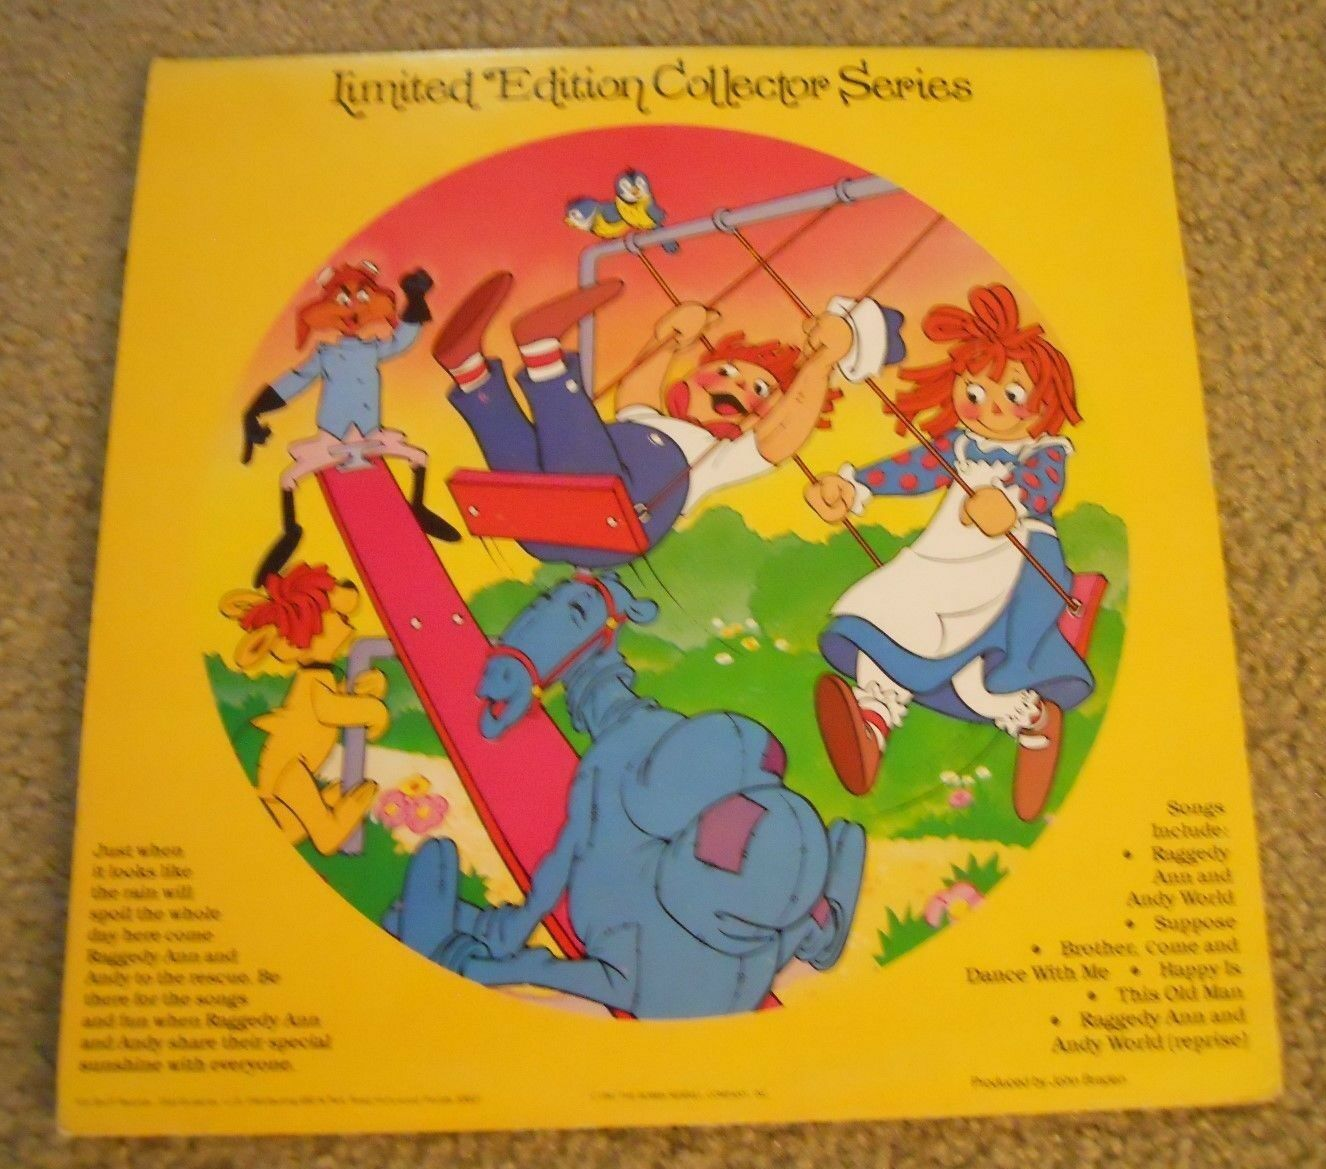 RAGGEDY ANN ANDY HAPPINESS ALBUM 12 VINYL PICTURE DISC/KPD 6001 EX /VG  - $12.00